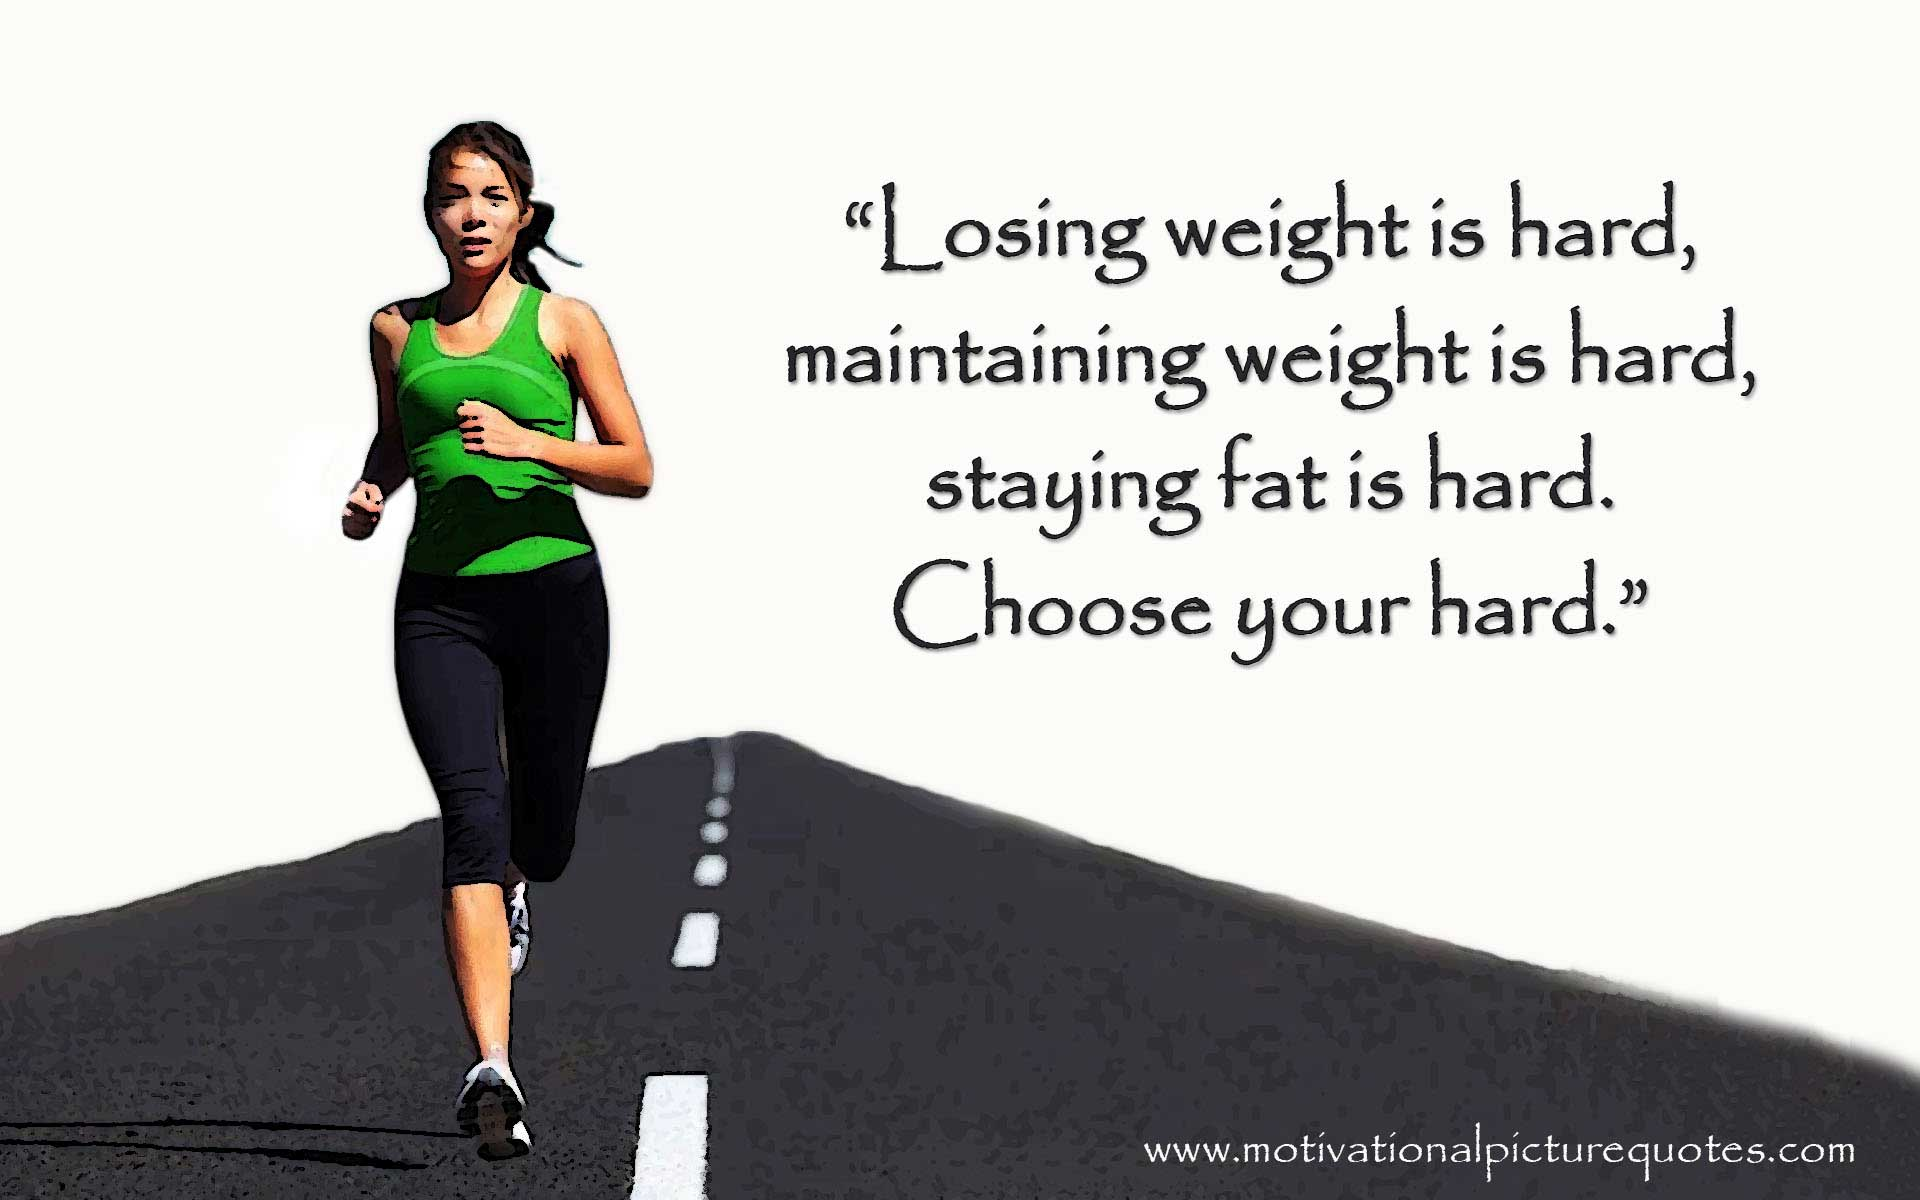 10+ Inspirational Workout Quotes Images To Get Fit | Insbright